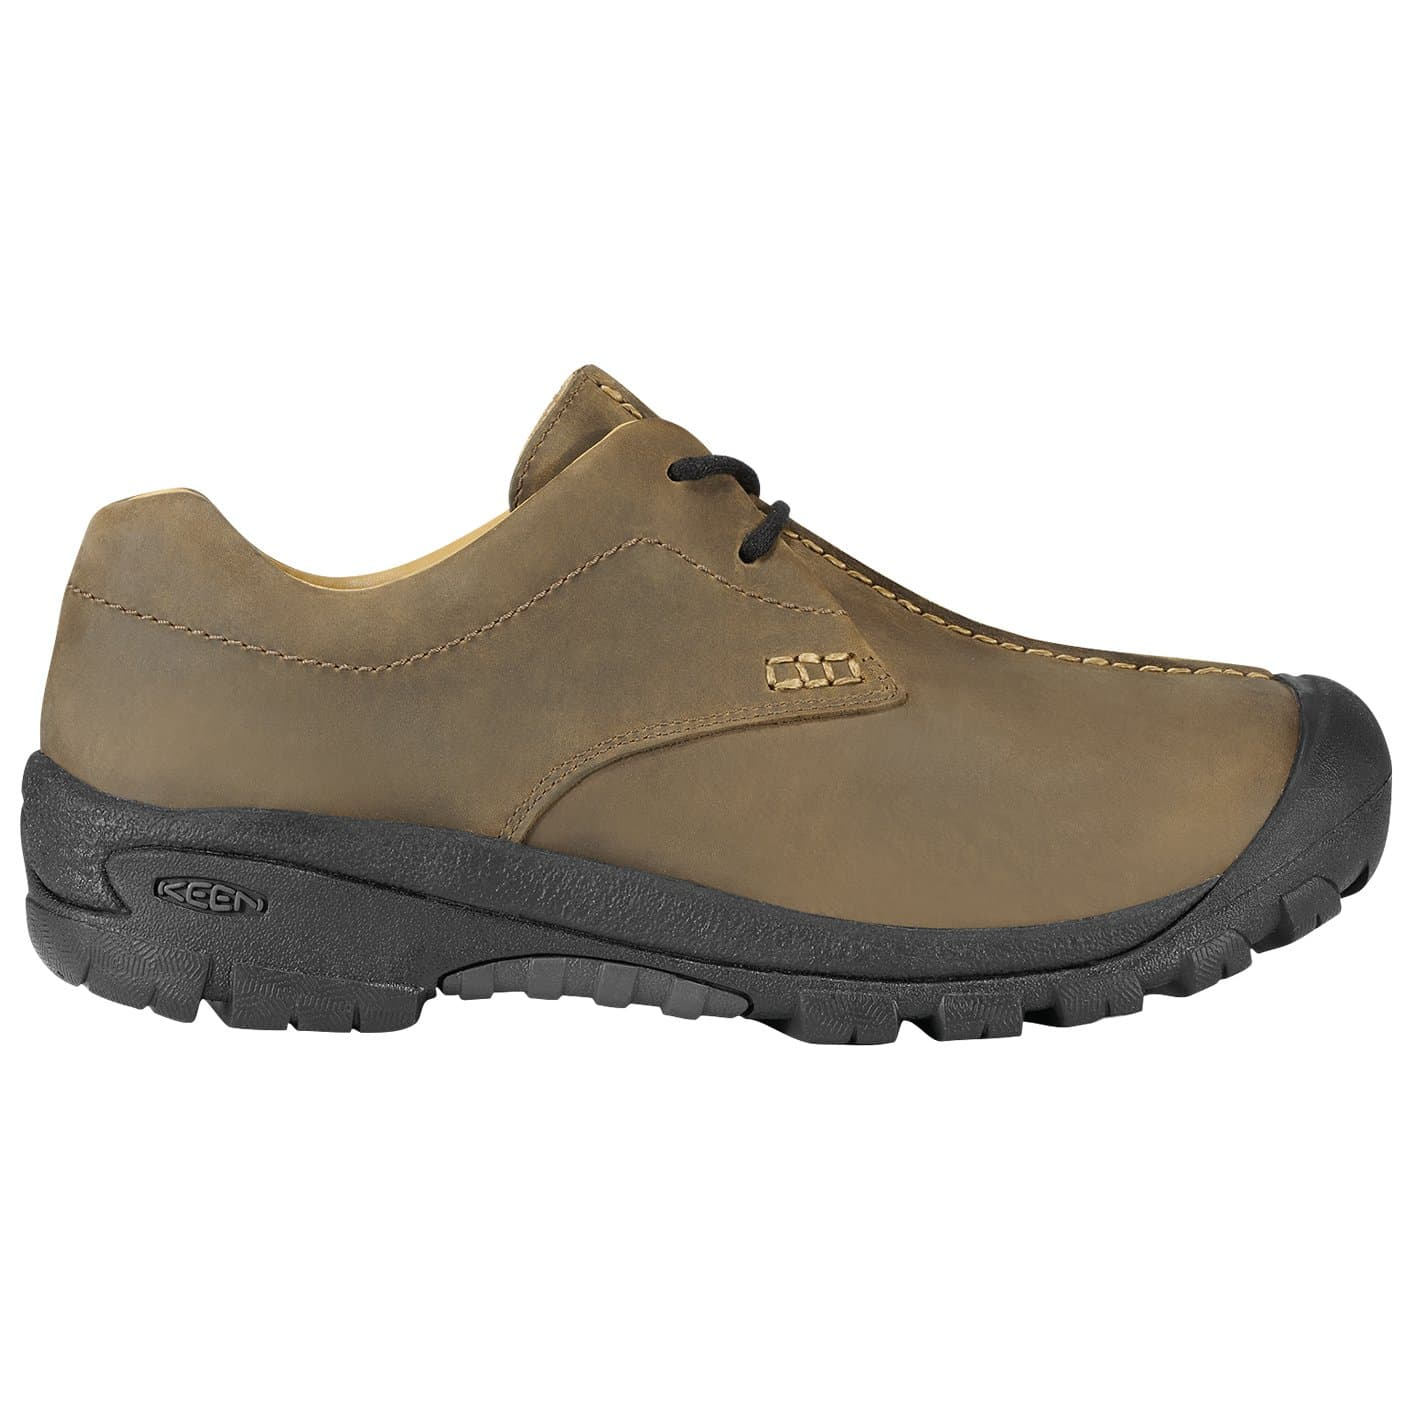 Keen Boston III Chaussures polyvalentes pour homme